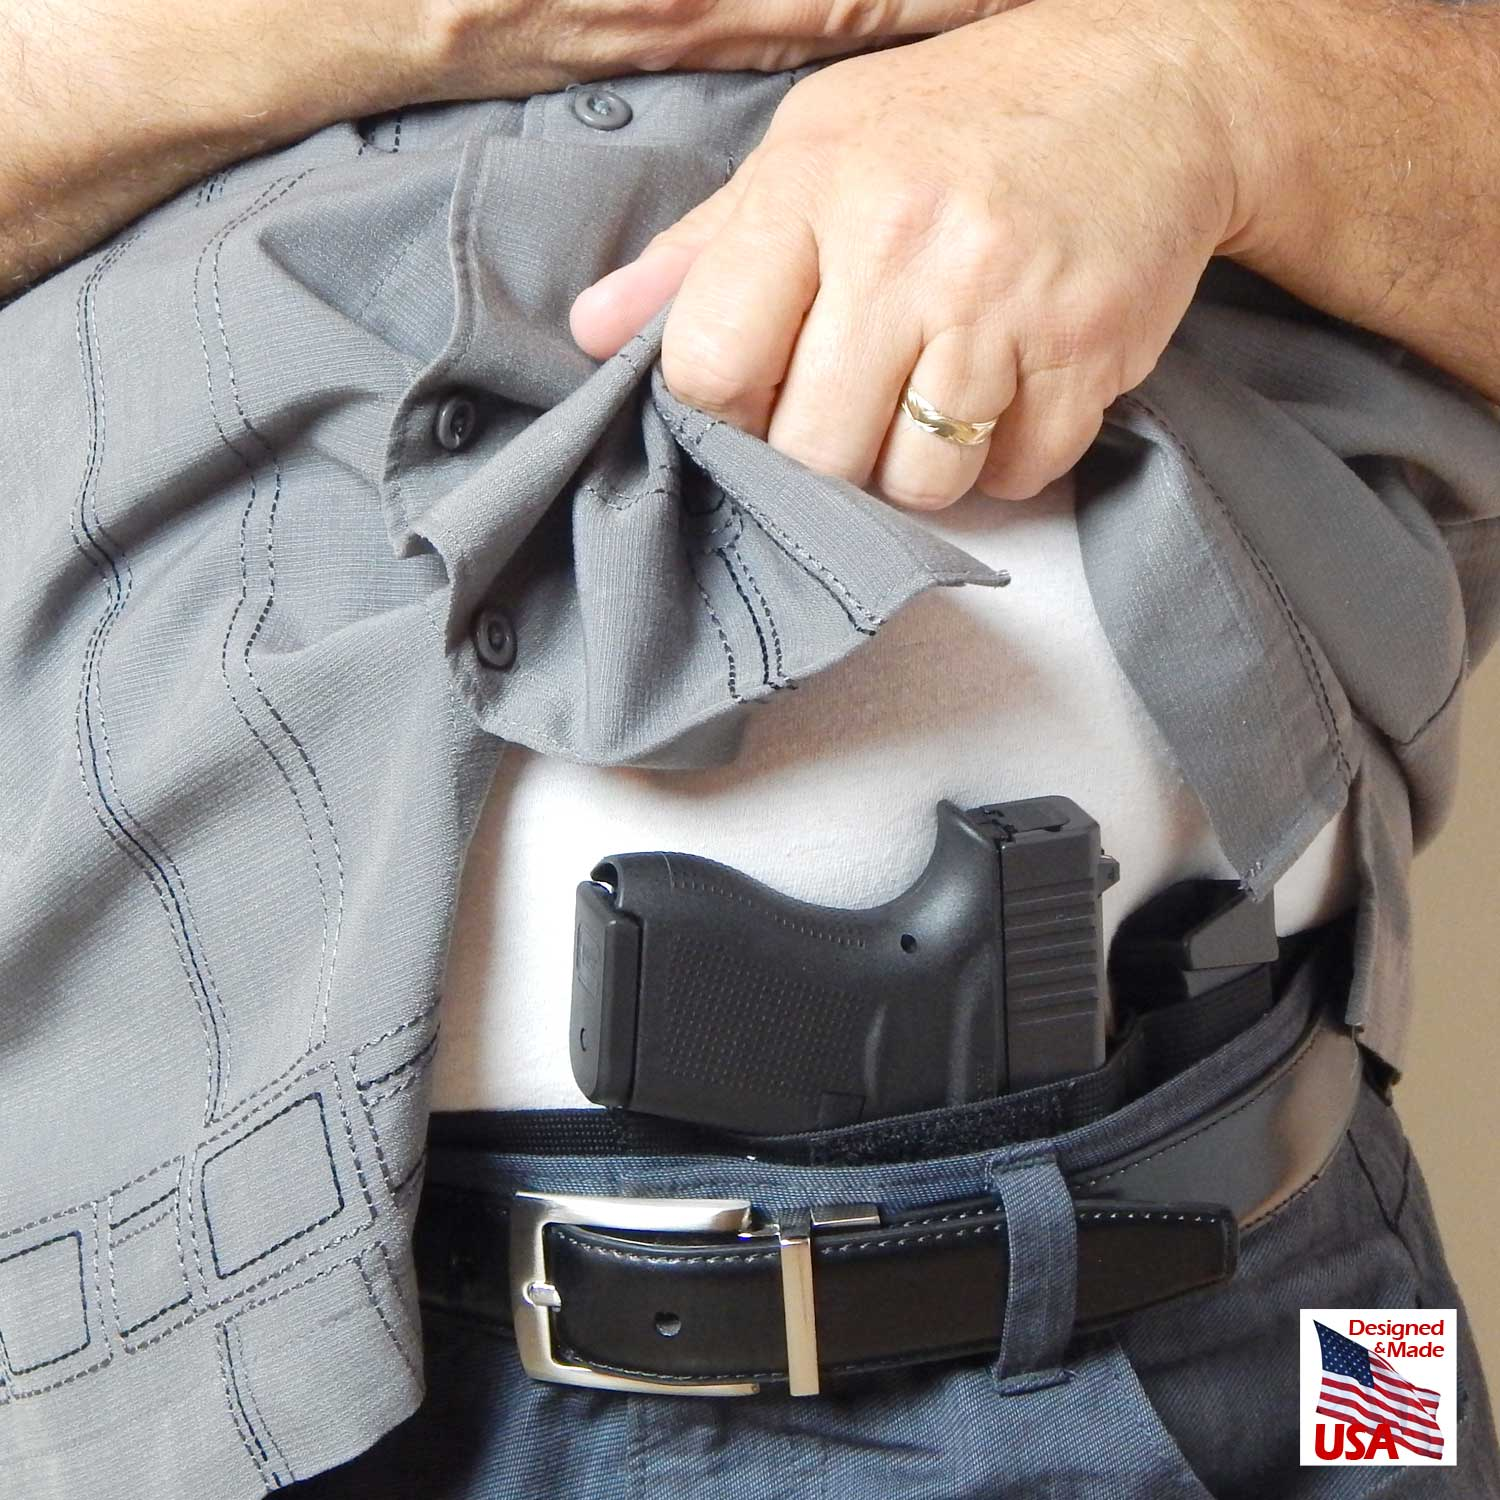 Belly Band Concealed Carry Gun Holster - Defender